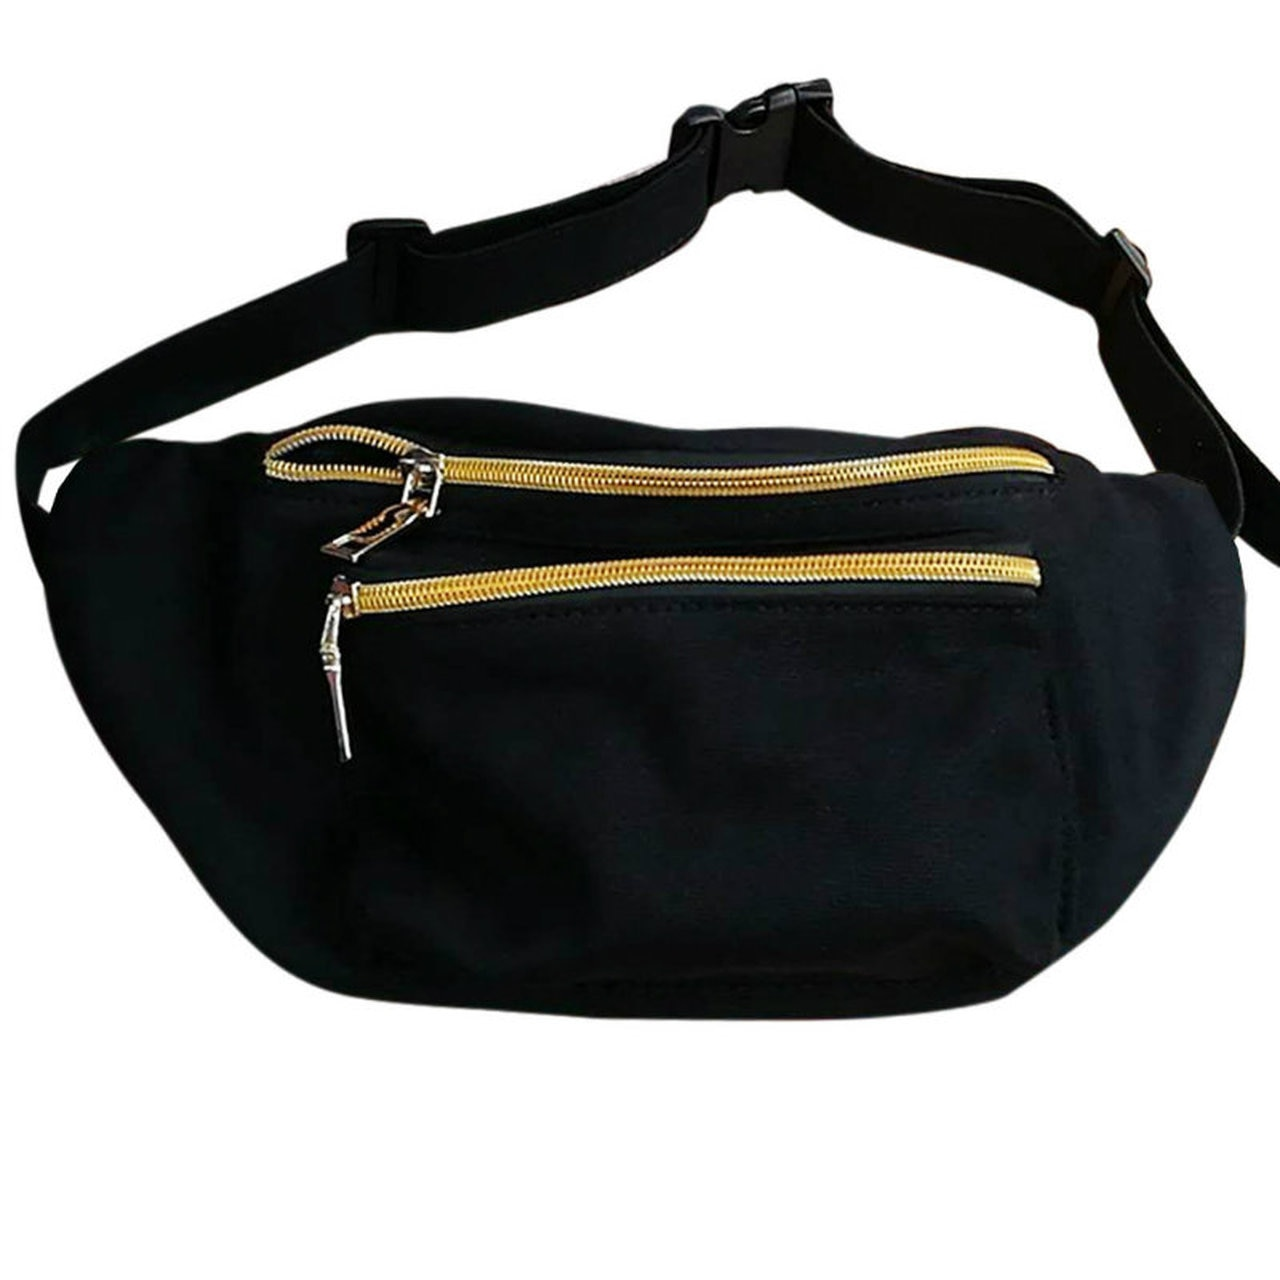 fanny packs for women